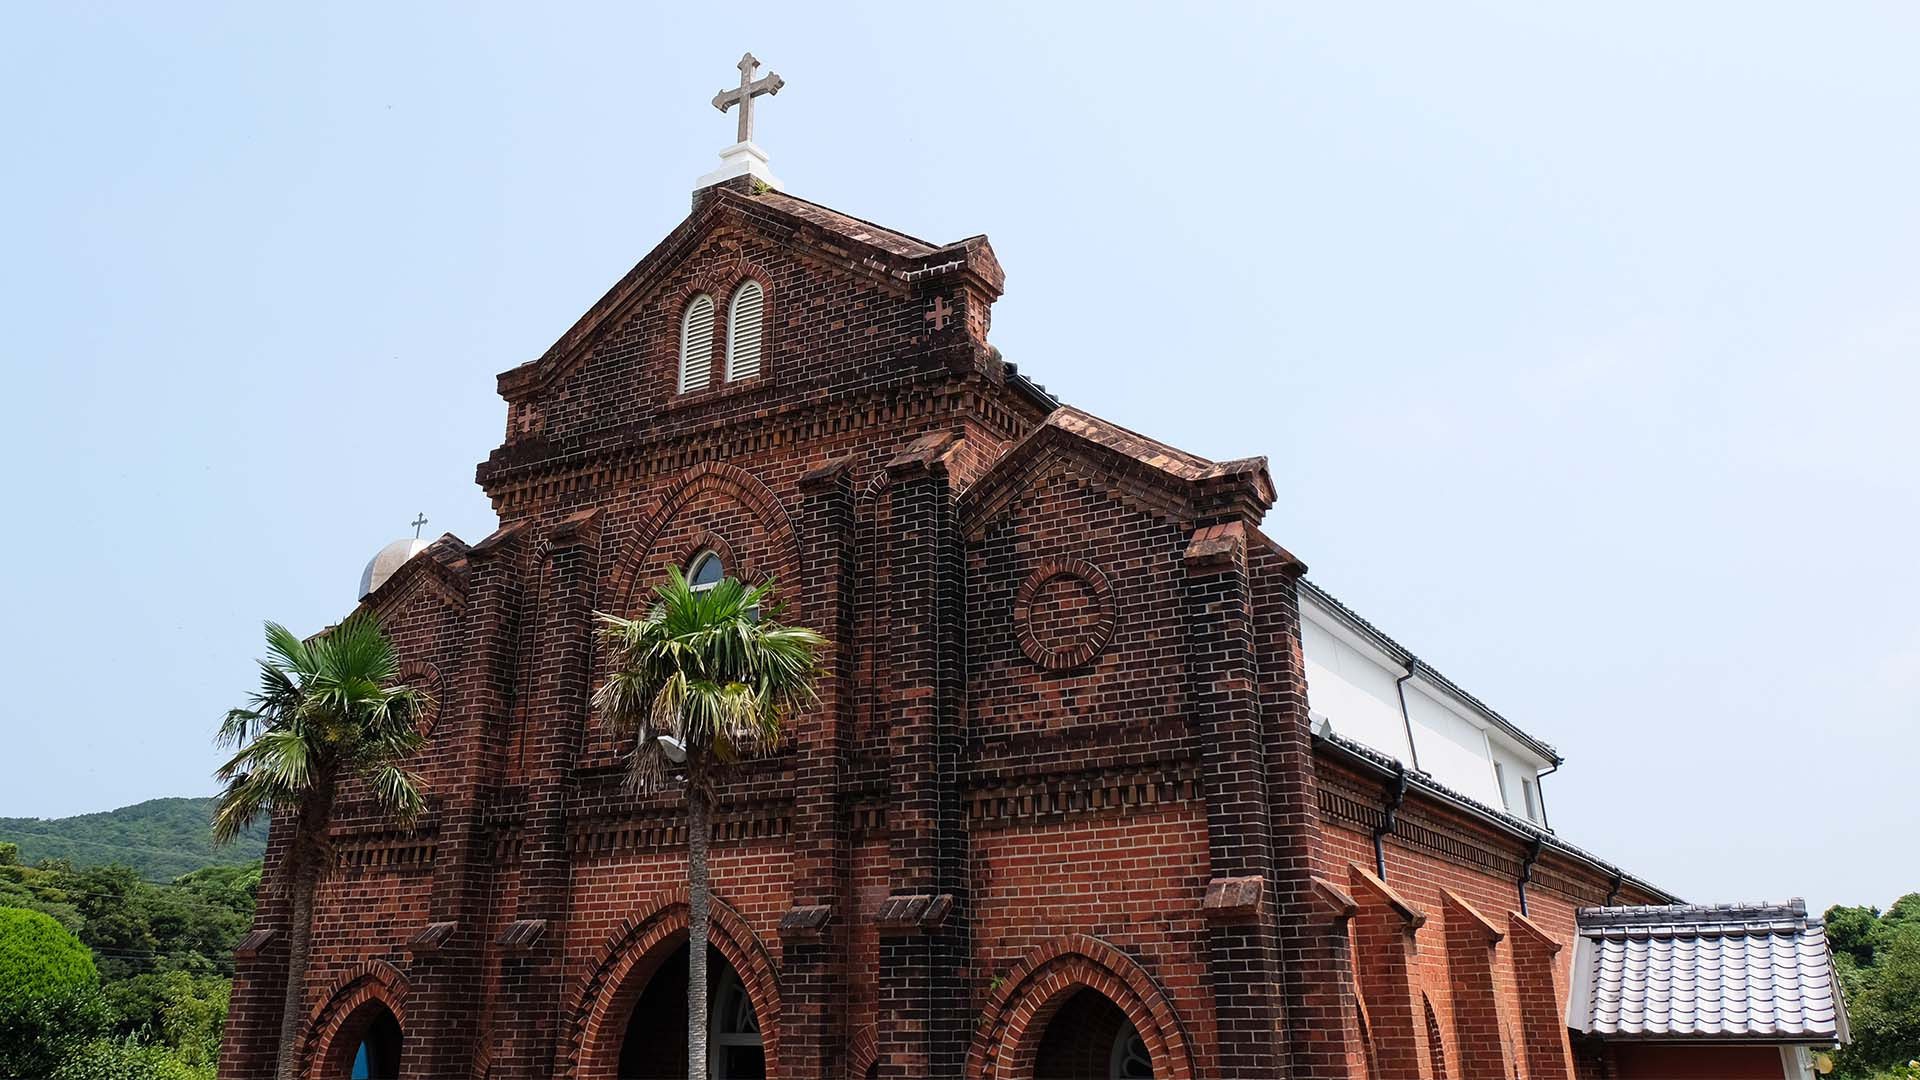 One of the stunning historic churches of Japan's Goto Islands